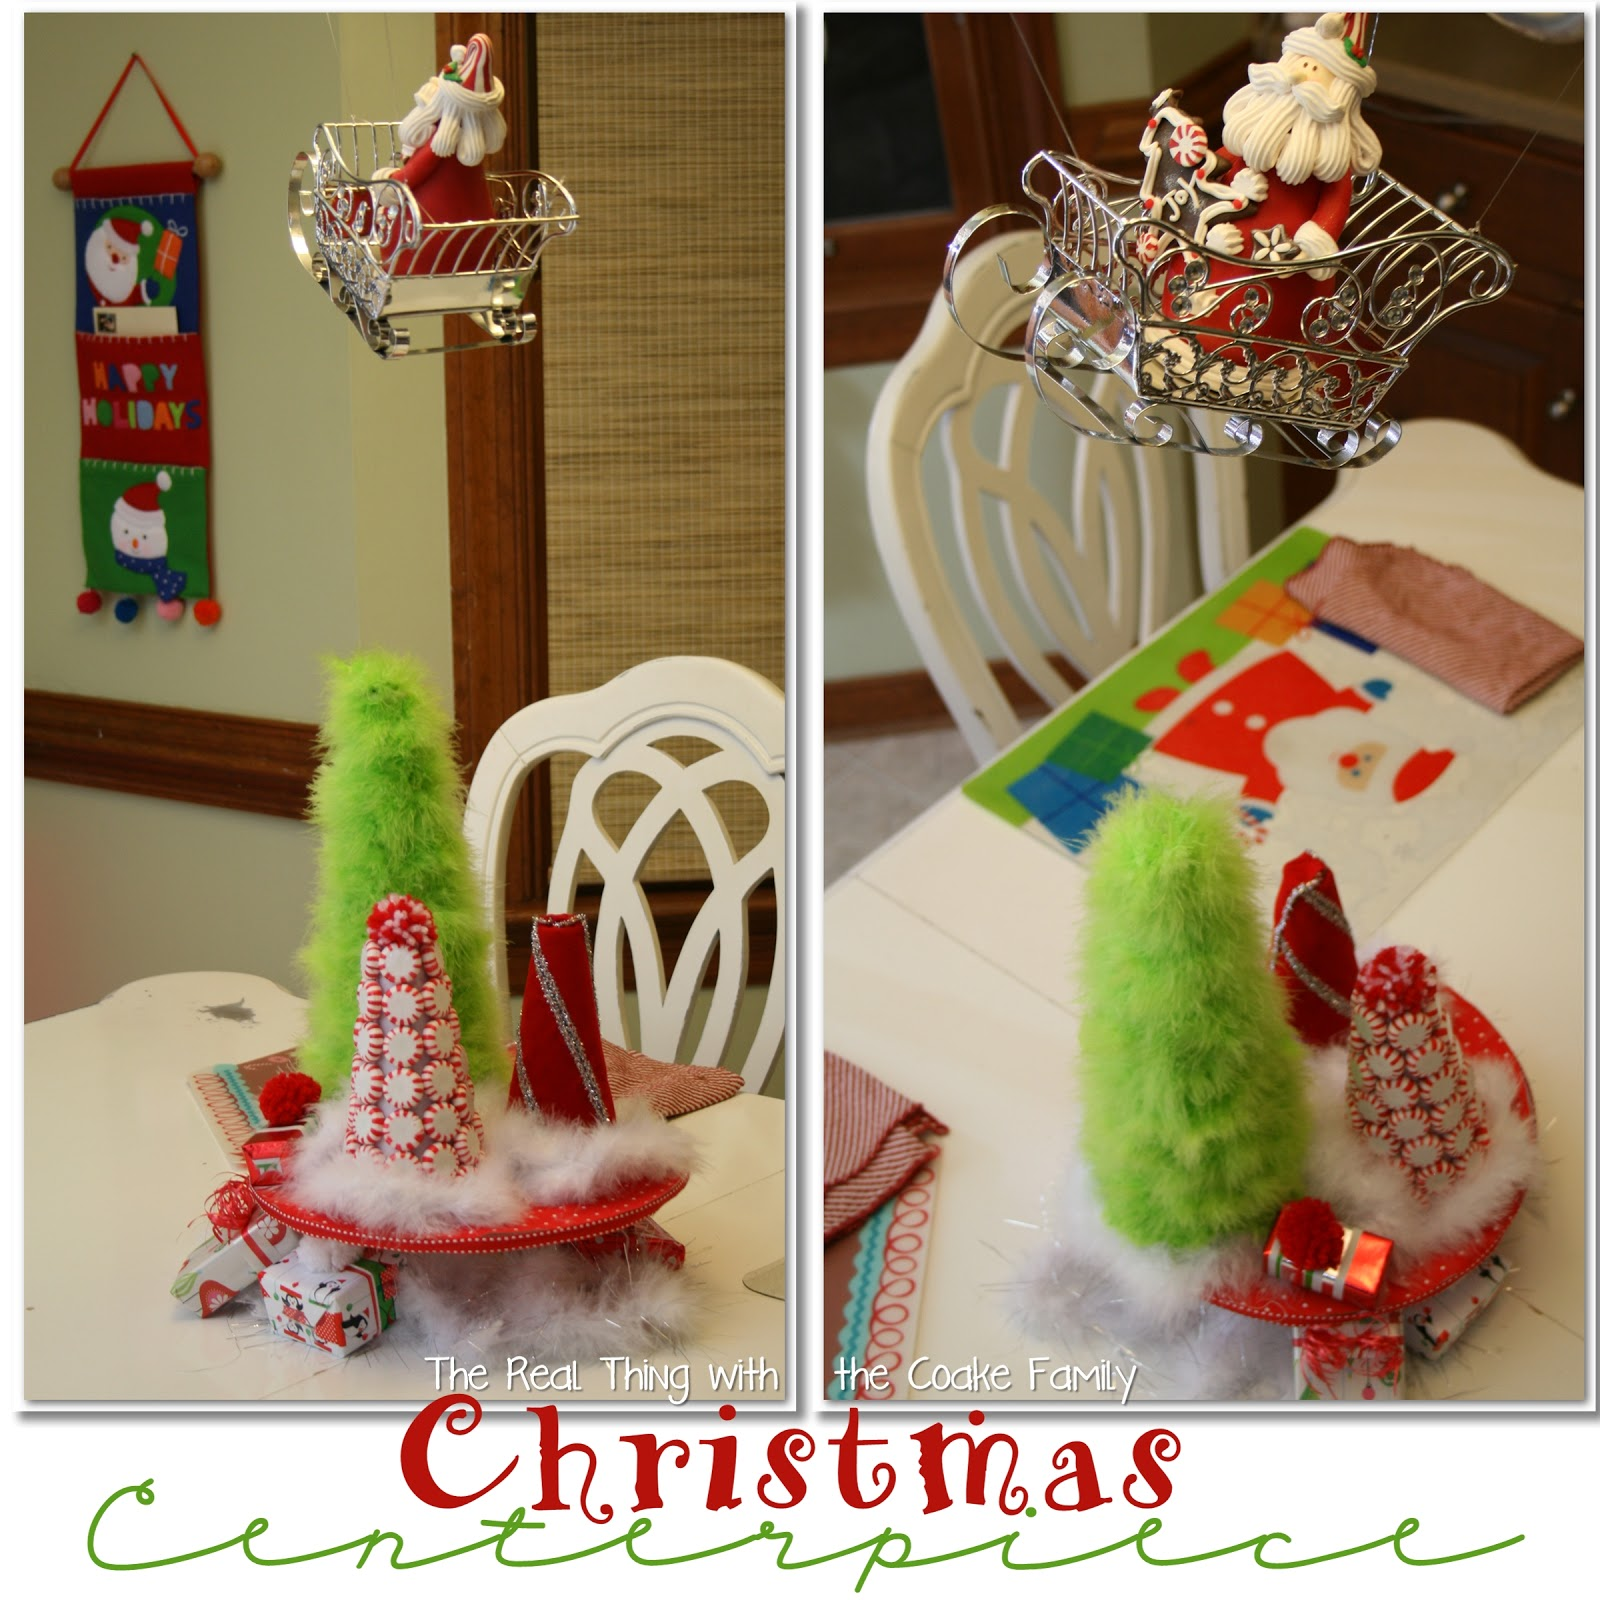 Table Decorating Ideas ~ Christmas Centerpiece - The Real Thing ...